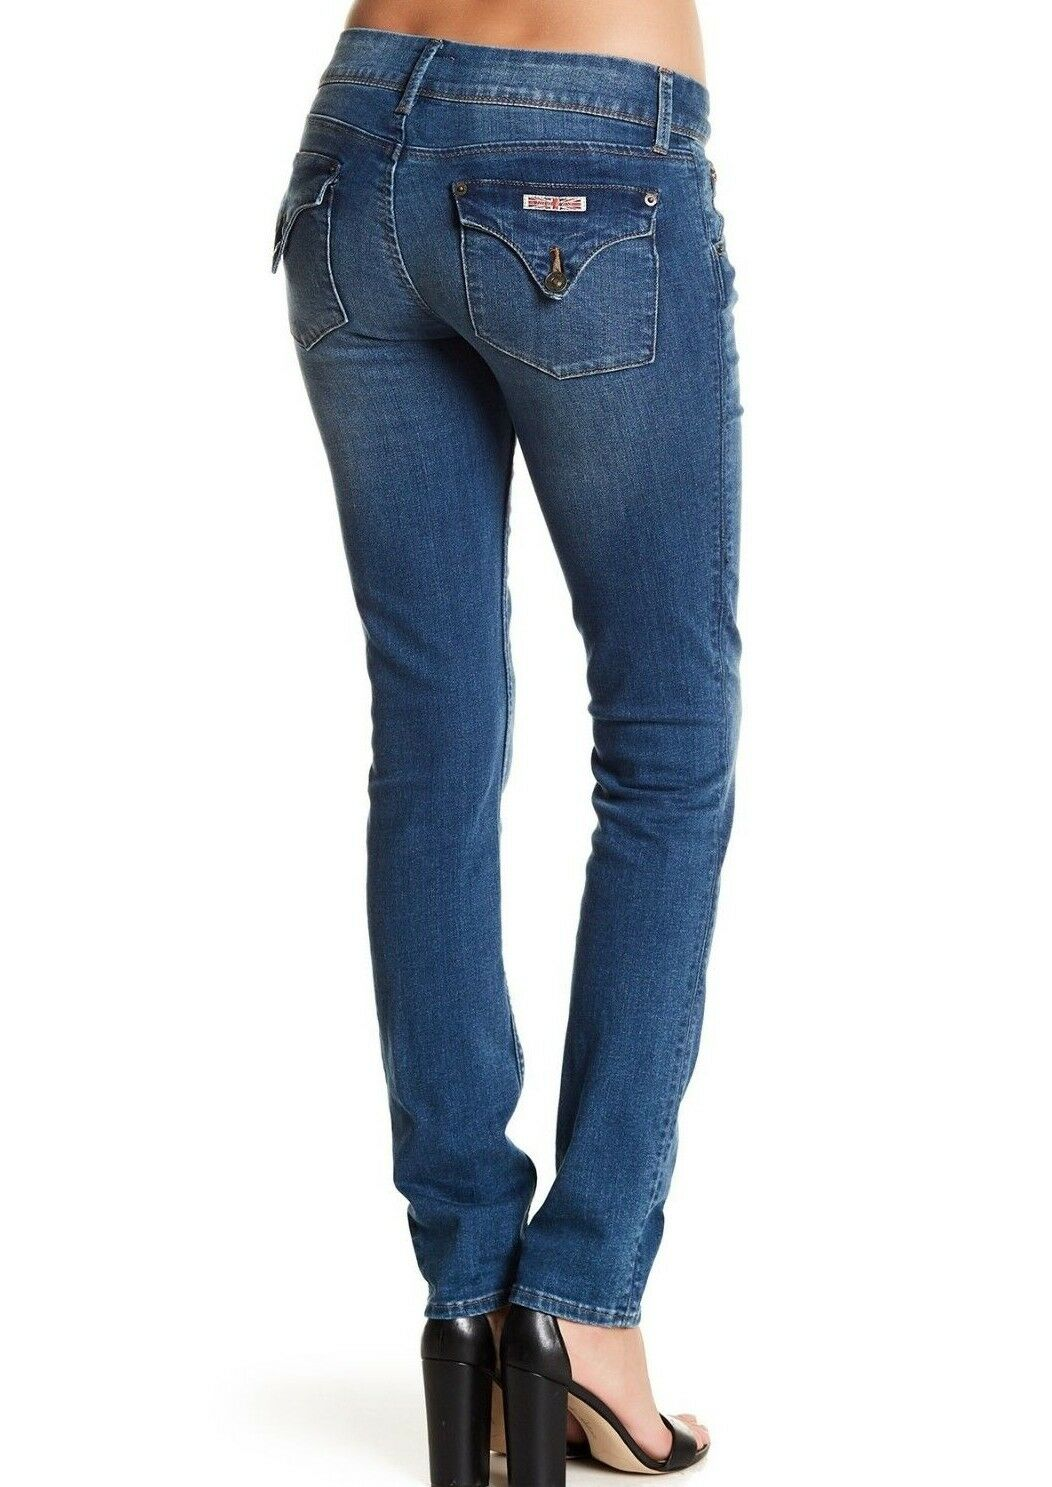 189 NWT HUDSON Sz27 COLLIN ANKLE MIDRISE SKINNY STRETCH JEANS RIVETING blueE